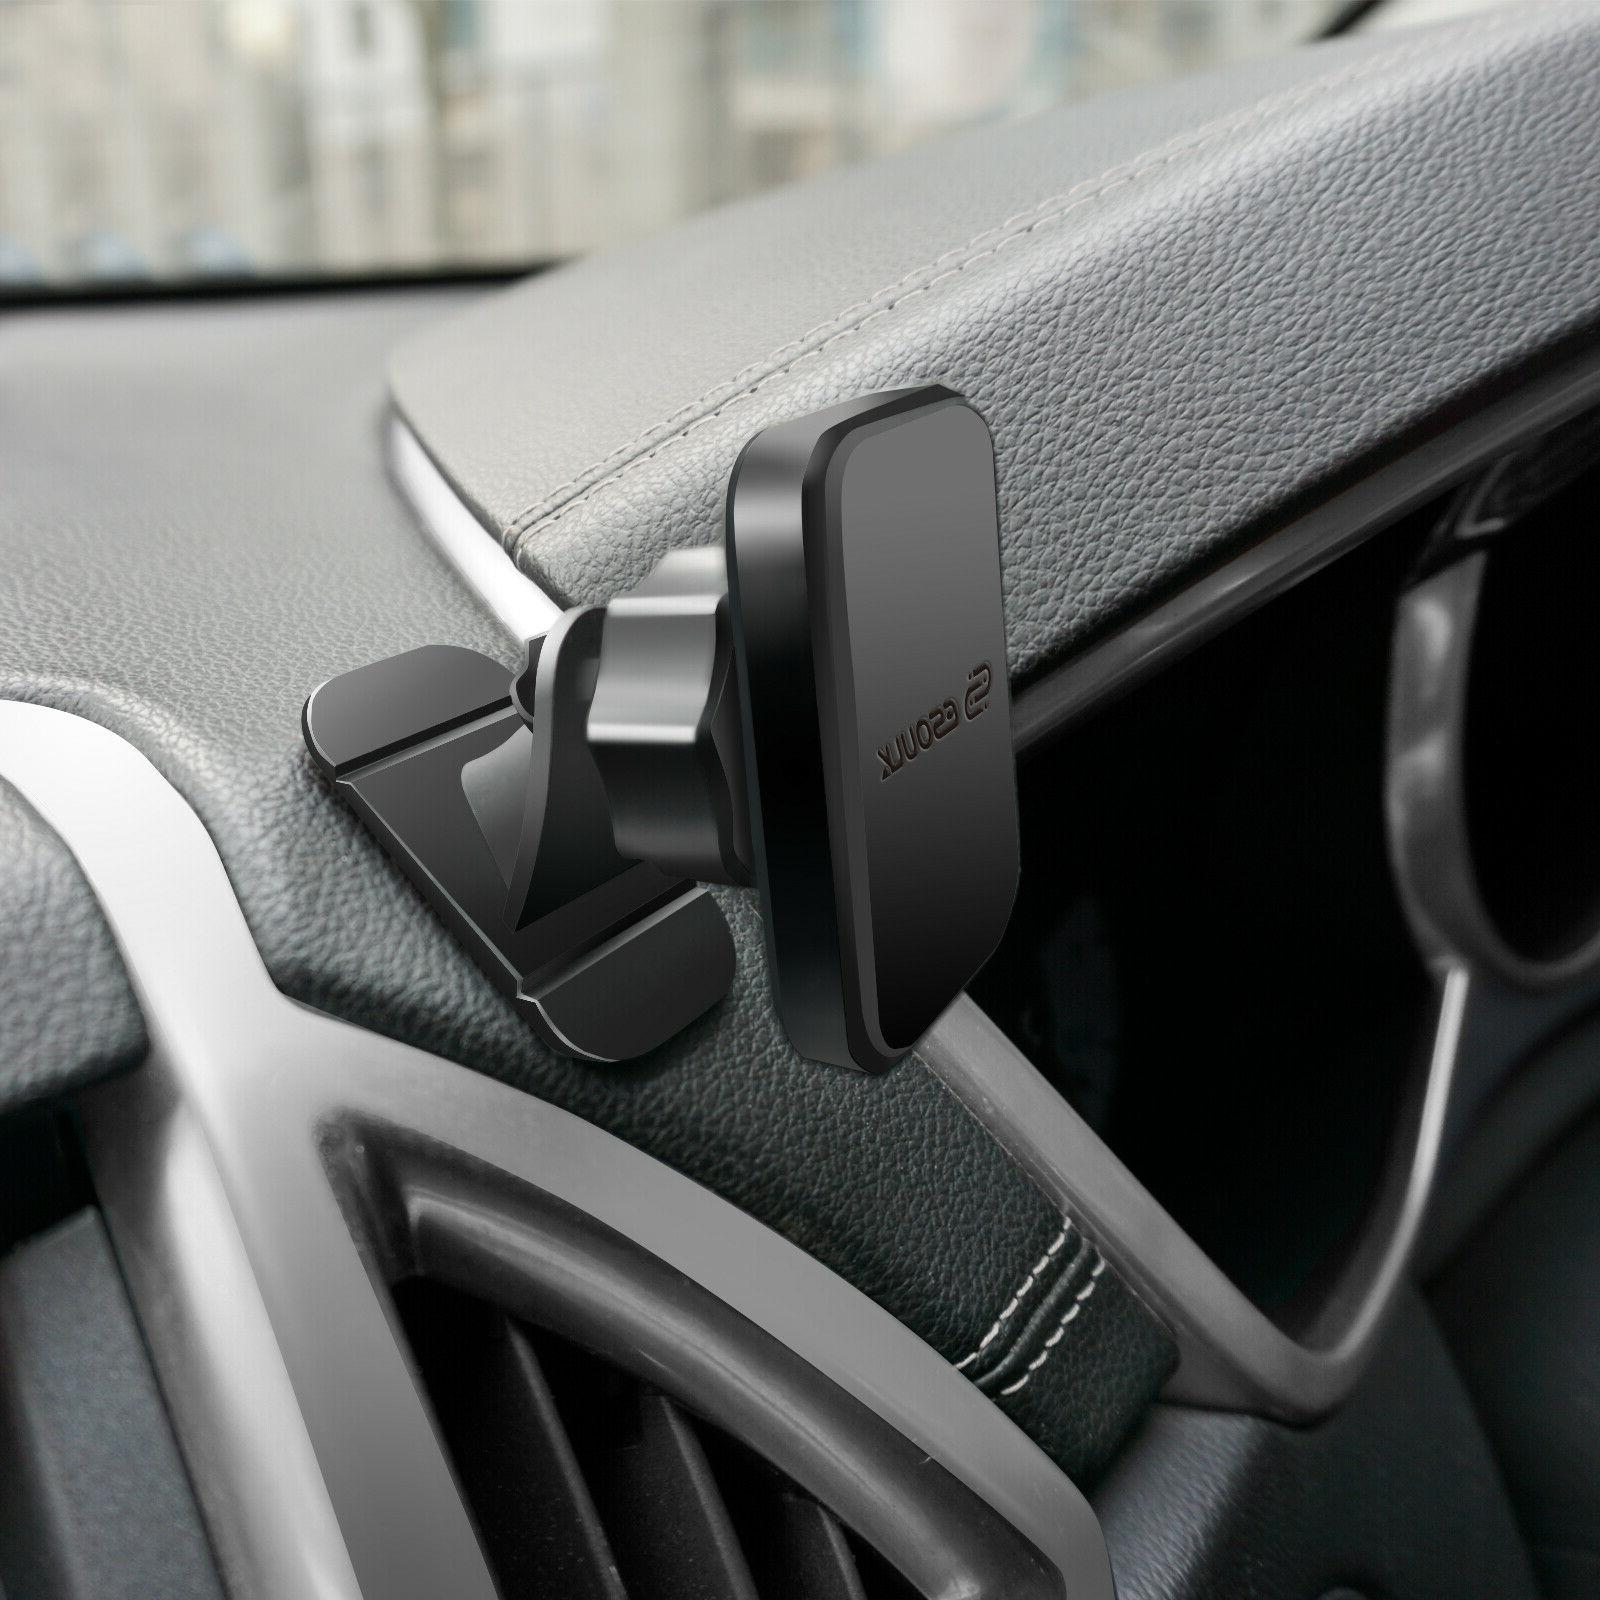 Esoulk Magnetic Mount Holder On Phone